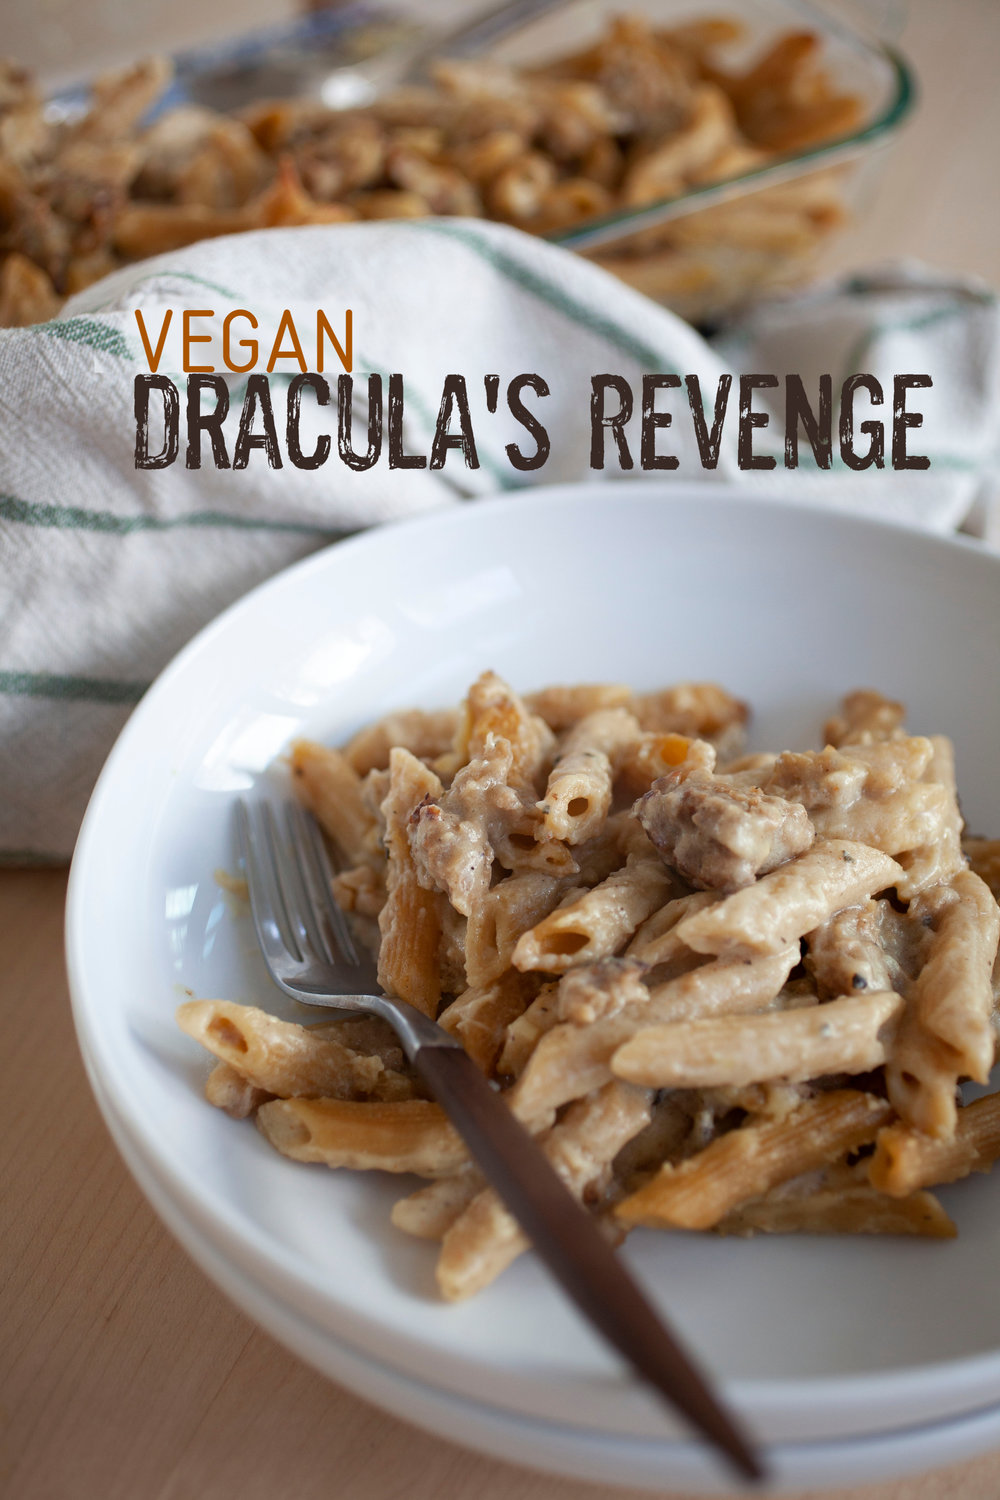 Produce On Parade - Vegan Dracula's Revenge - Delicious roasted garlic and browned vegan sausage mingle in a creamy, cheesy sauce mixed with penne pasta and baked to golden perfect. If you like garlic, cheese, and sausage this dish is going to become a staple!